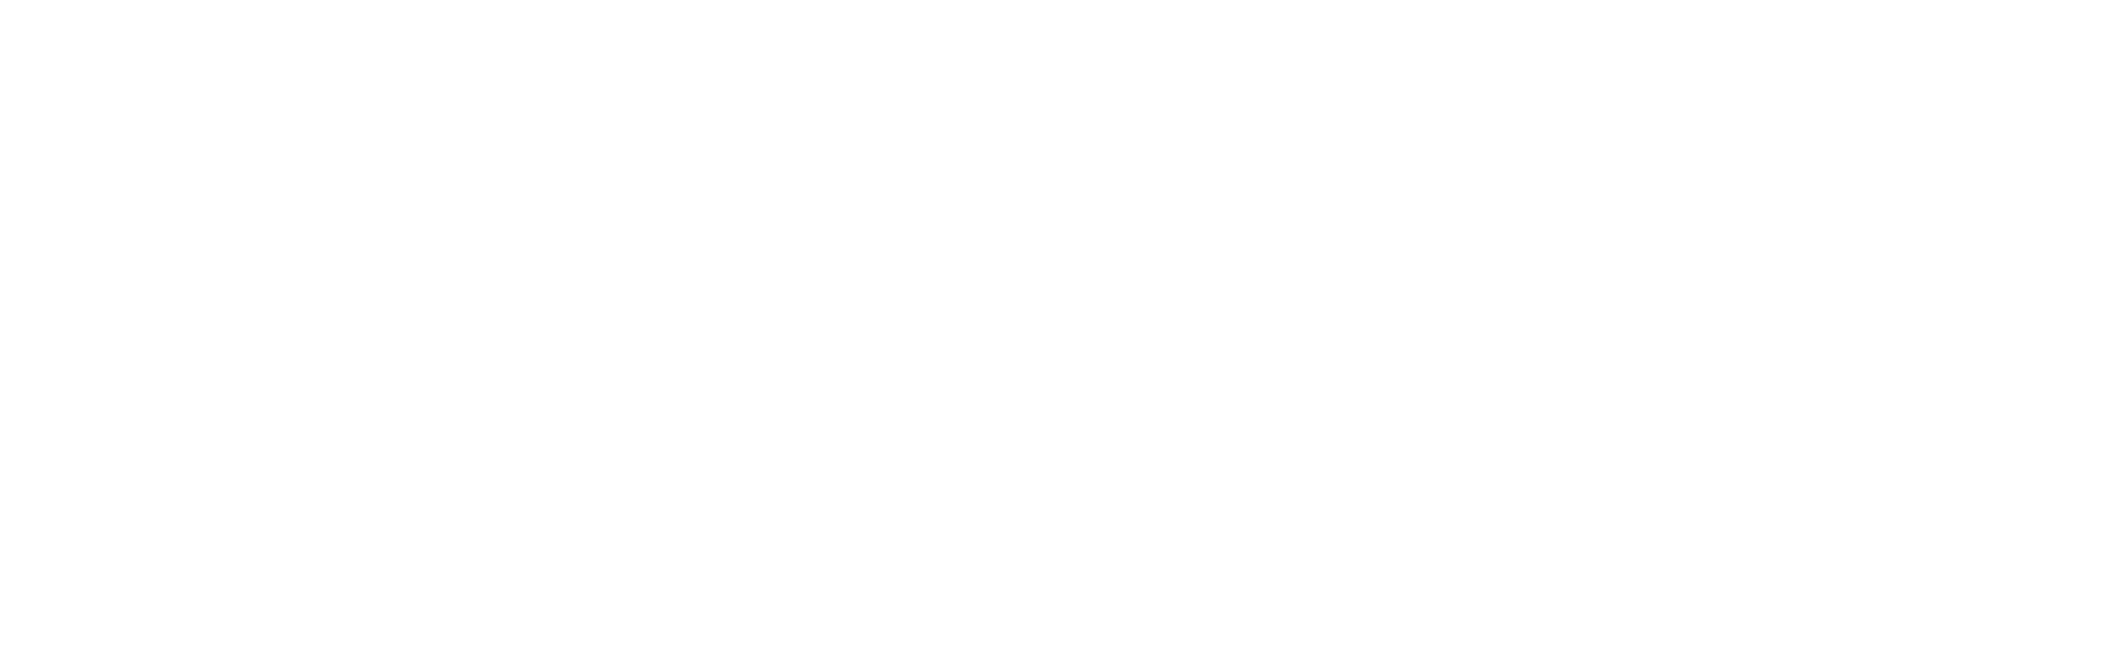 Multimedia Makeup Academy | Makeup School for Aspiring Professionals